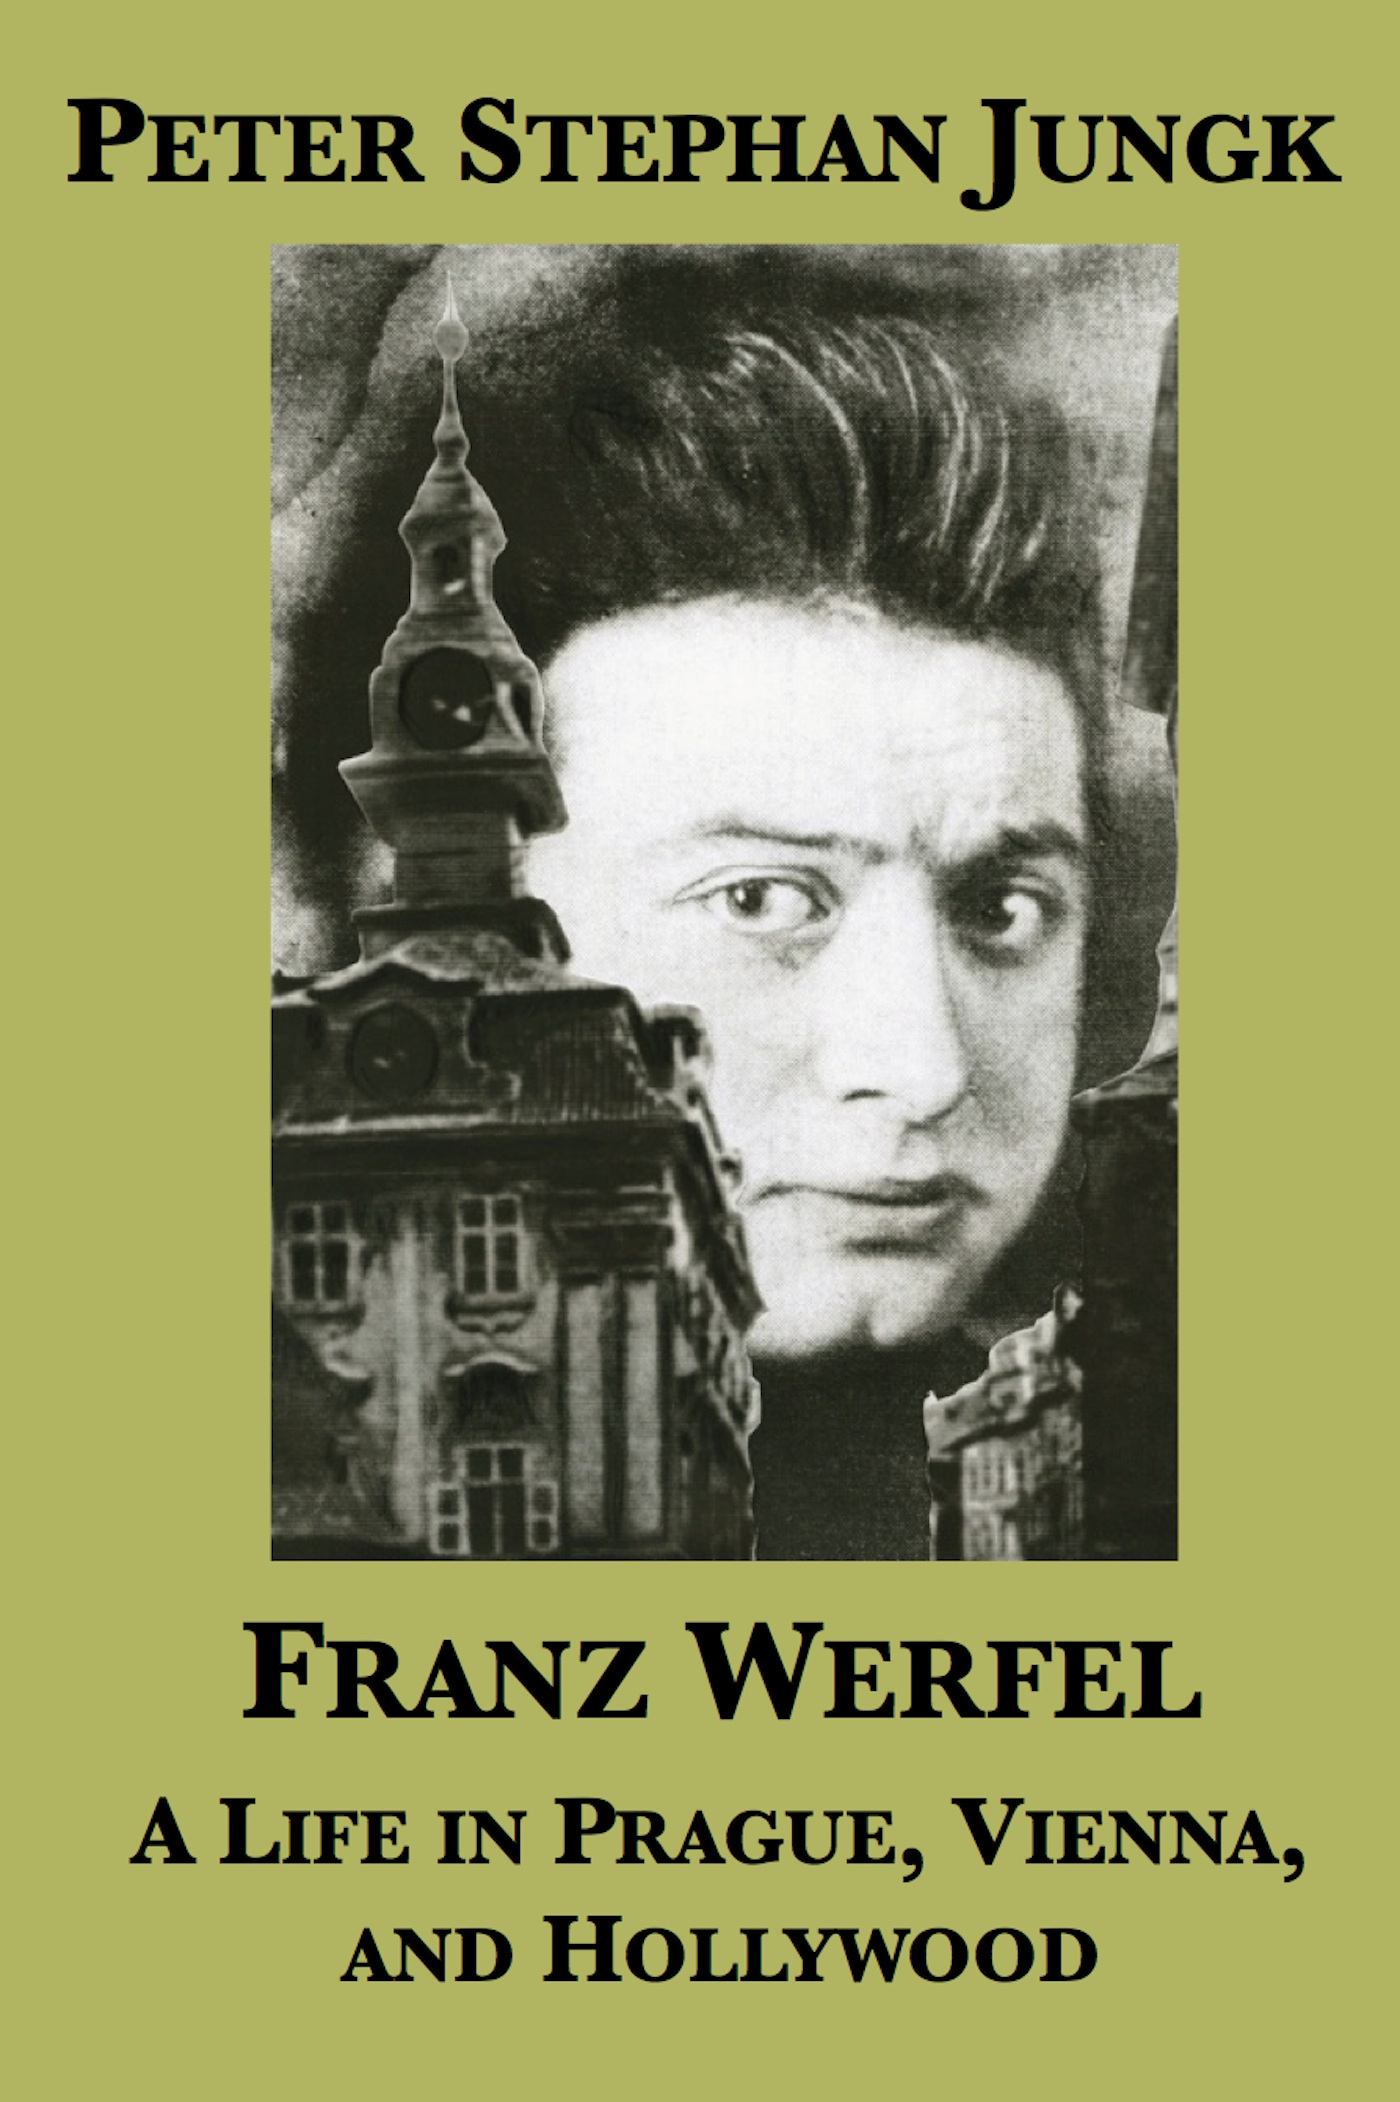 Franz Werfel: A Life in Prague, Vienna, and Hollywood By: Peter Stephan Jungk